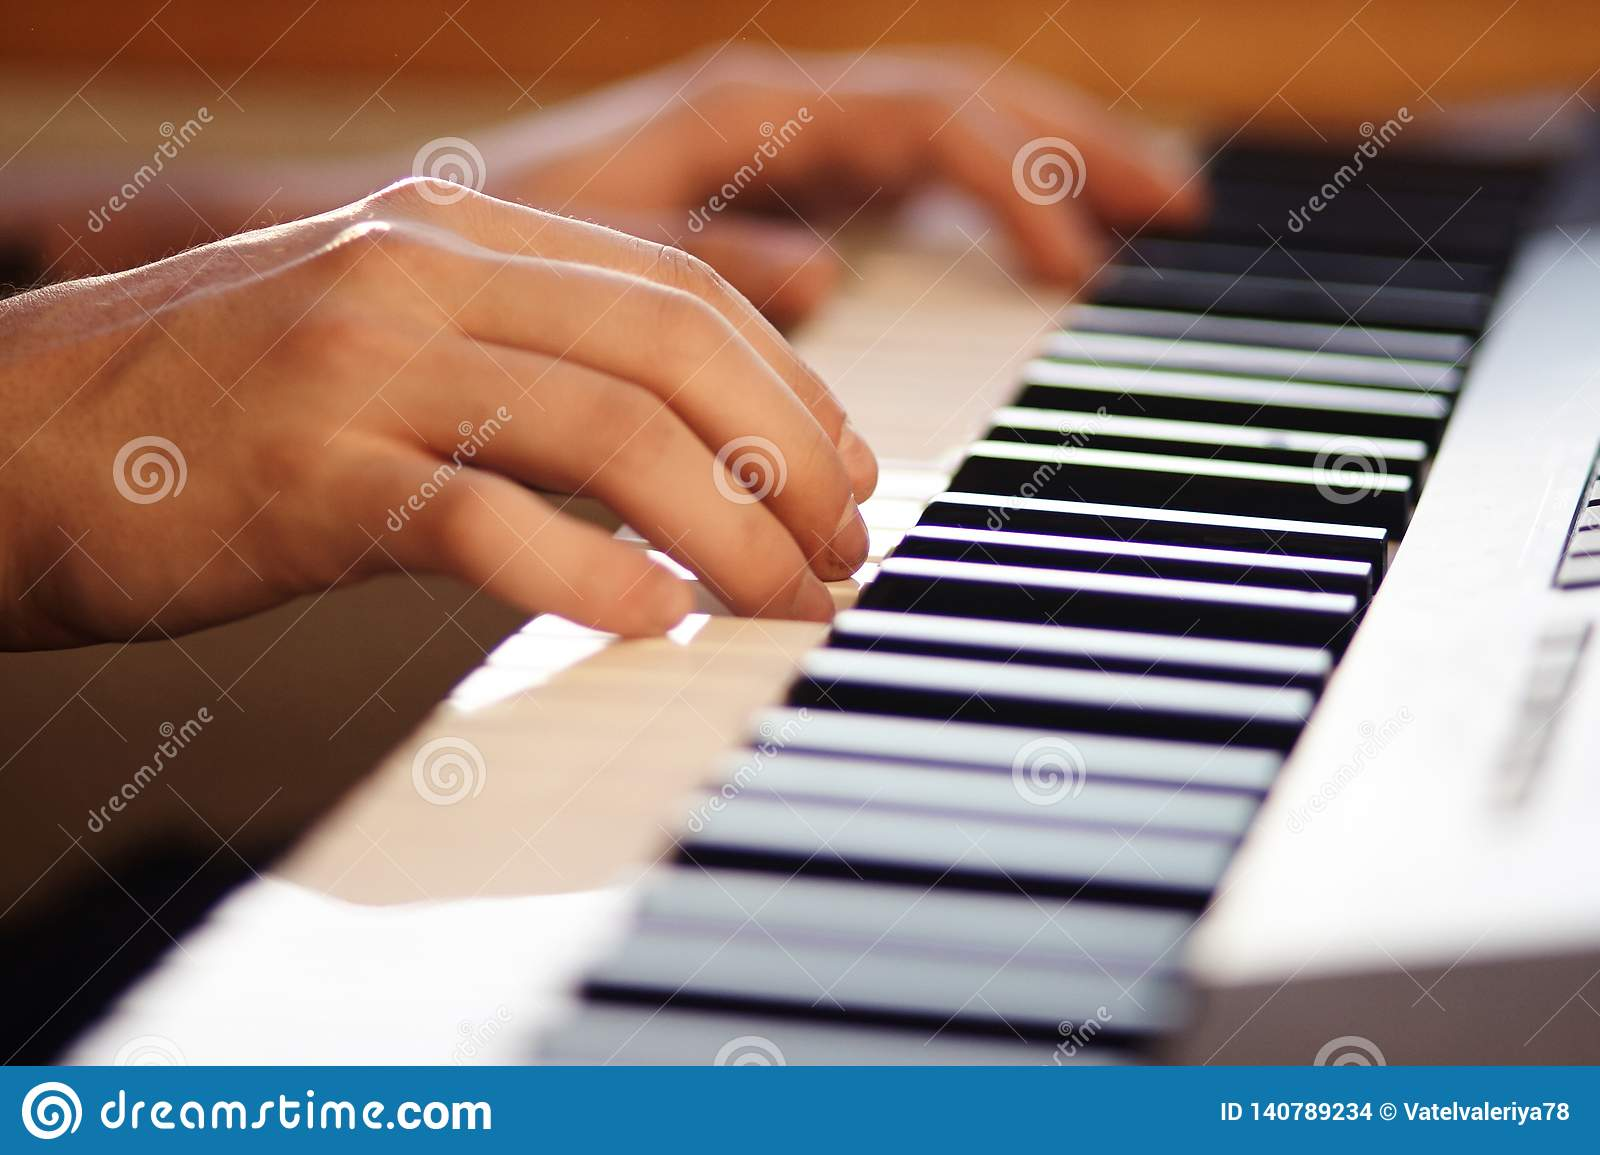 The musician pressing the keys of a modern musical synthesizer